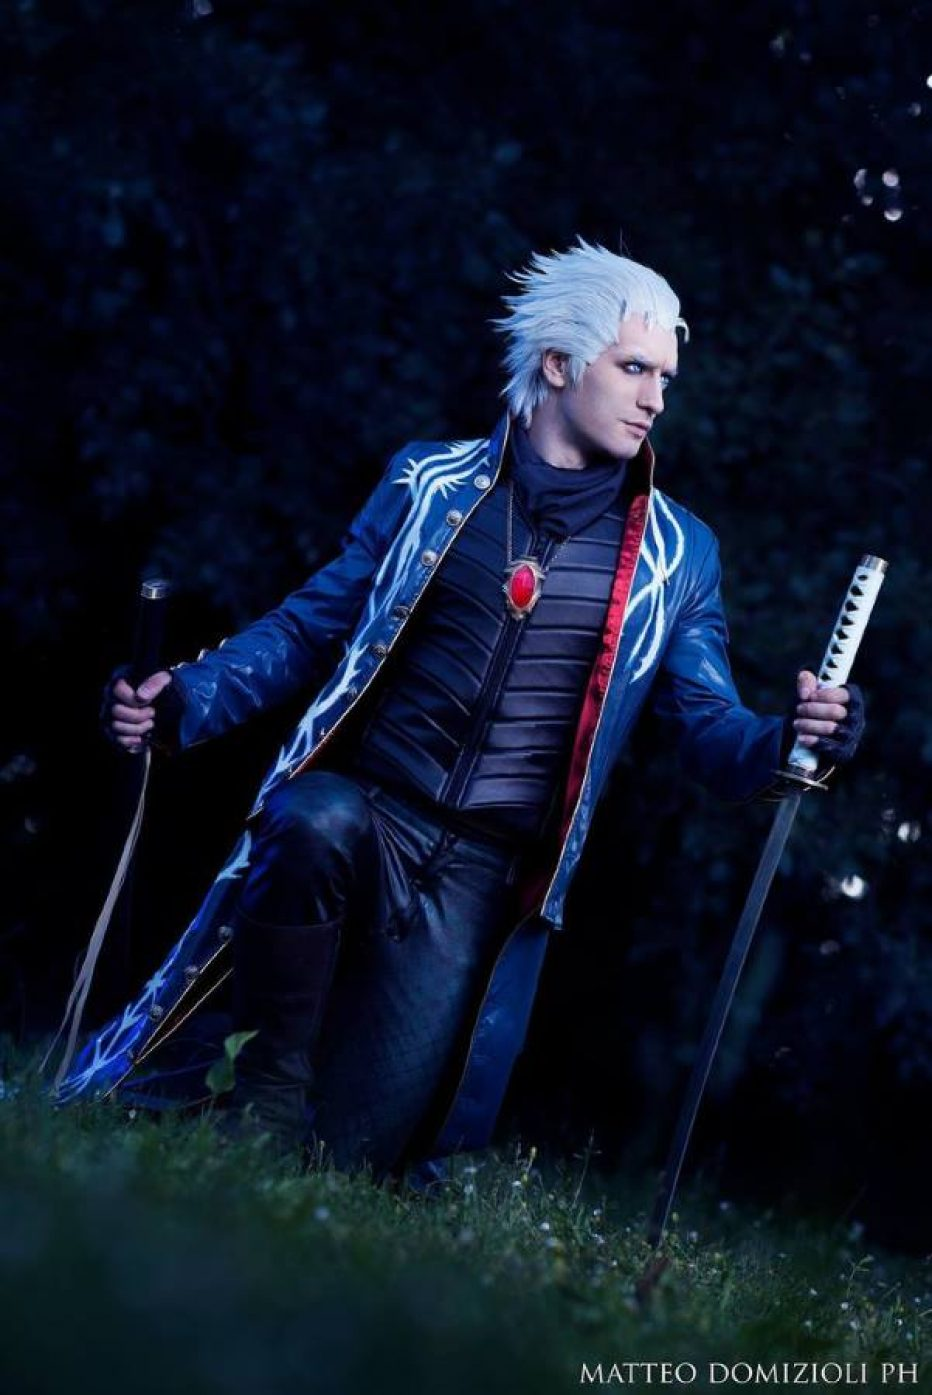 Devil-May-Cry-Vergil-Cosplay-Gamers-Heroes-6.jpg